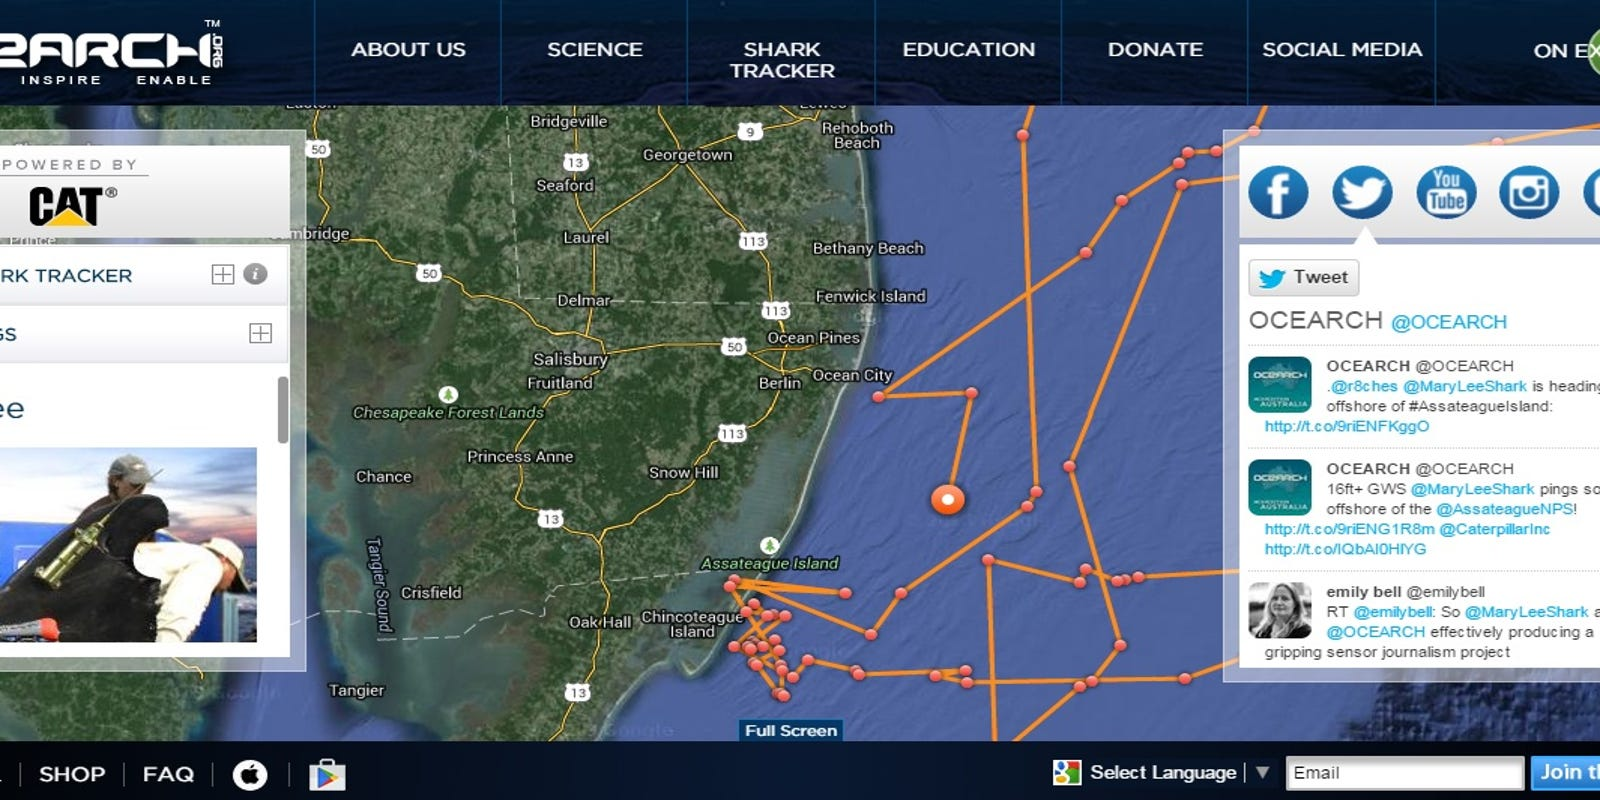 She's back! The great white shark Mary Lee, that is